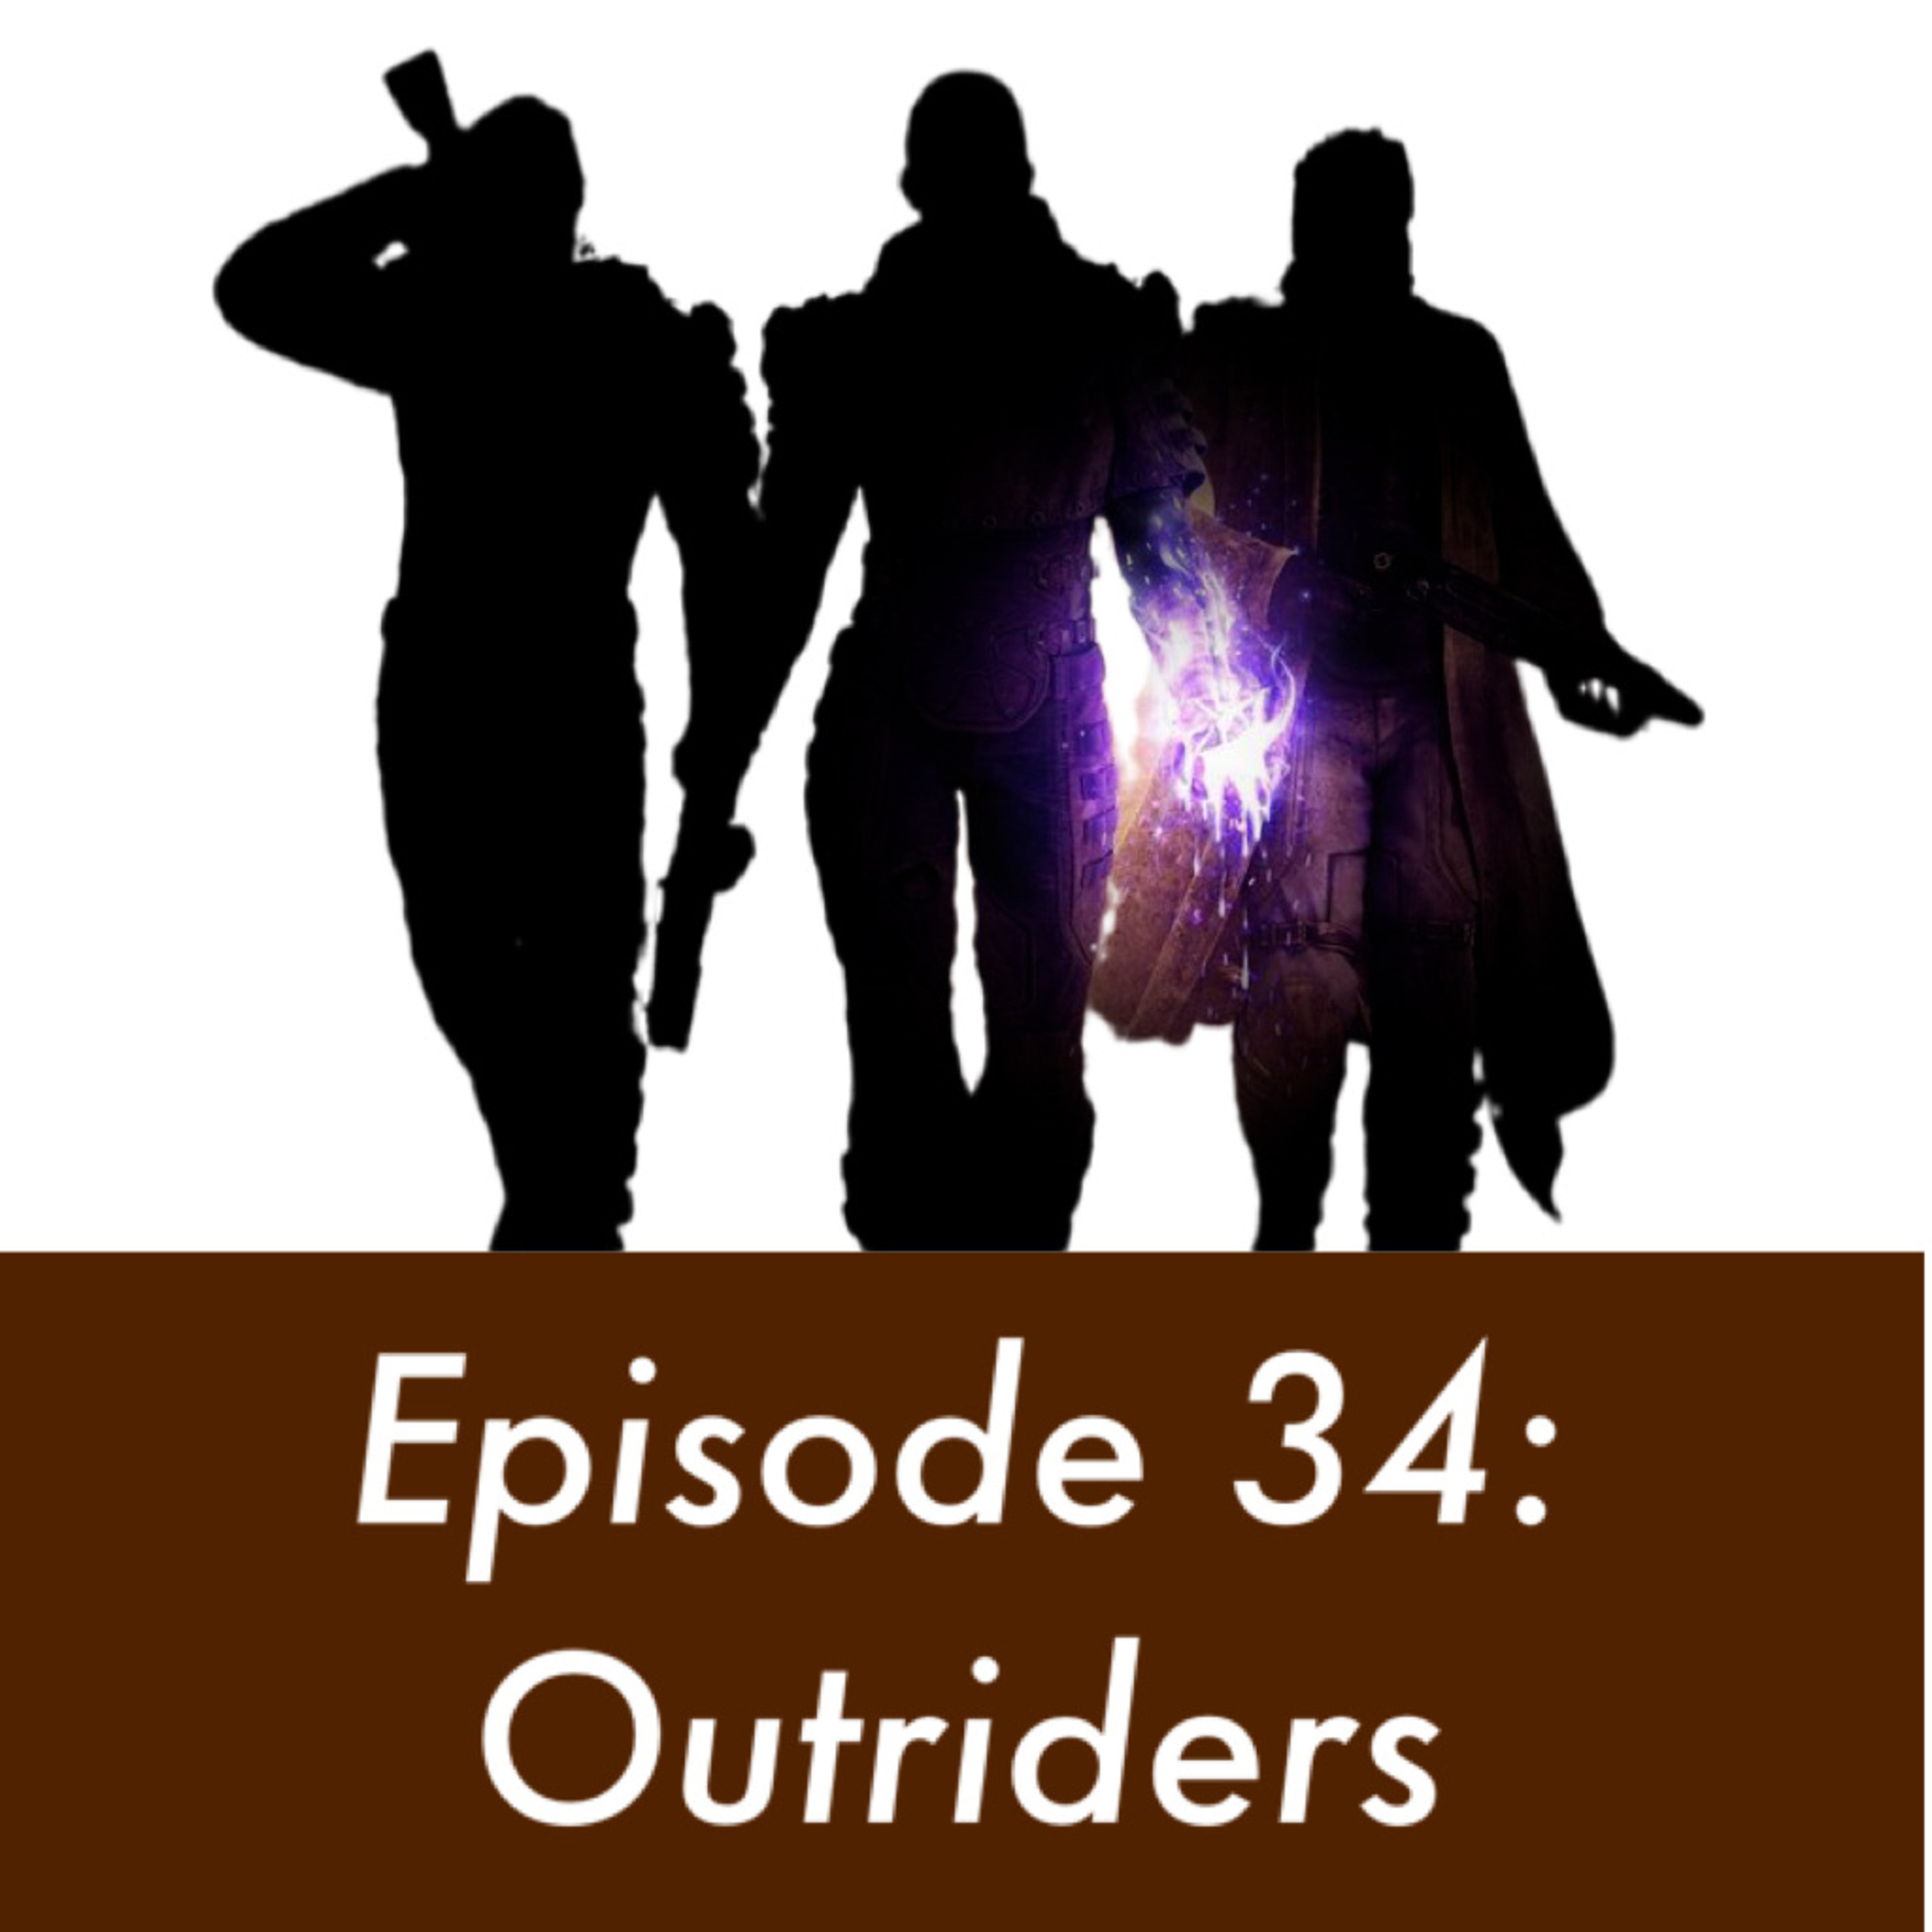 34: Outriders